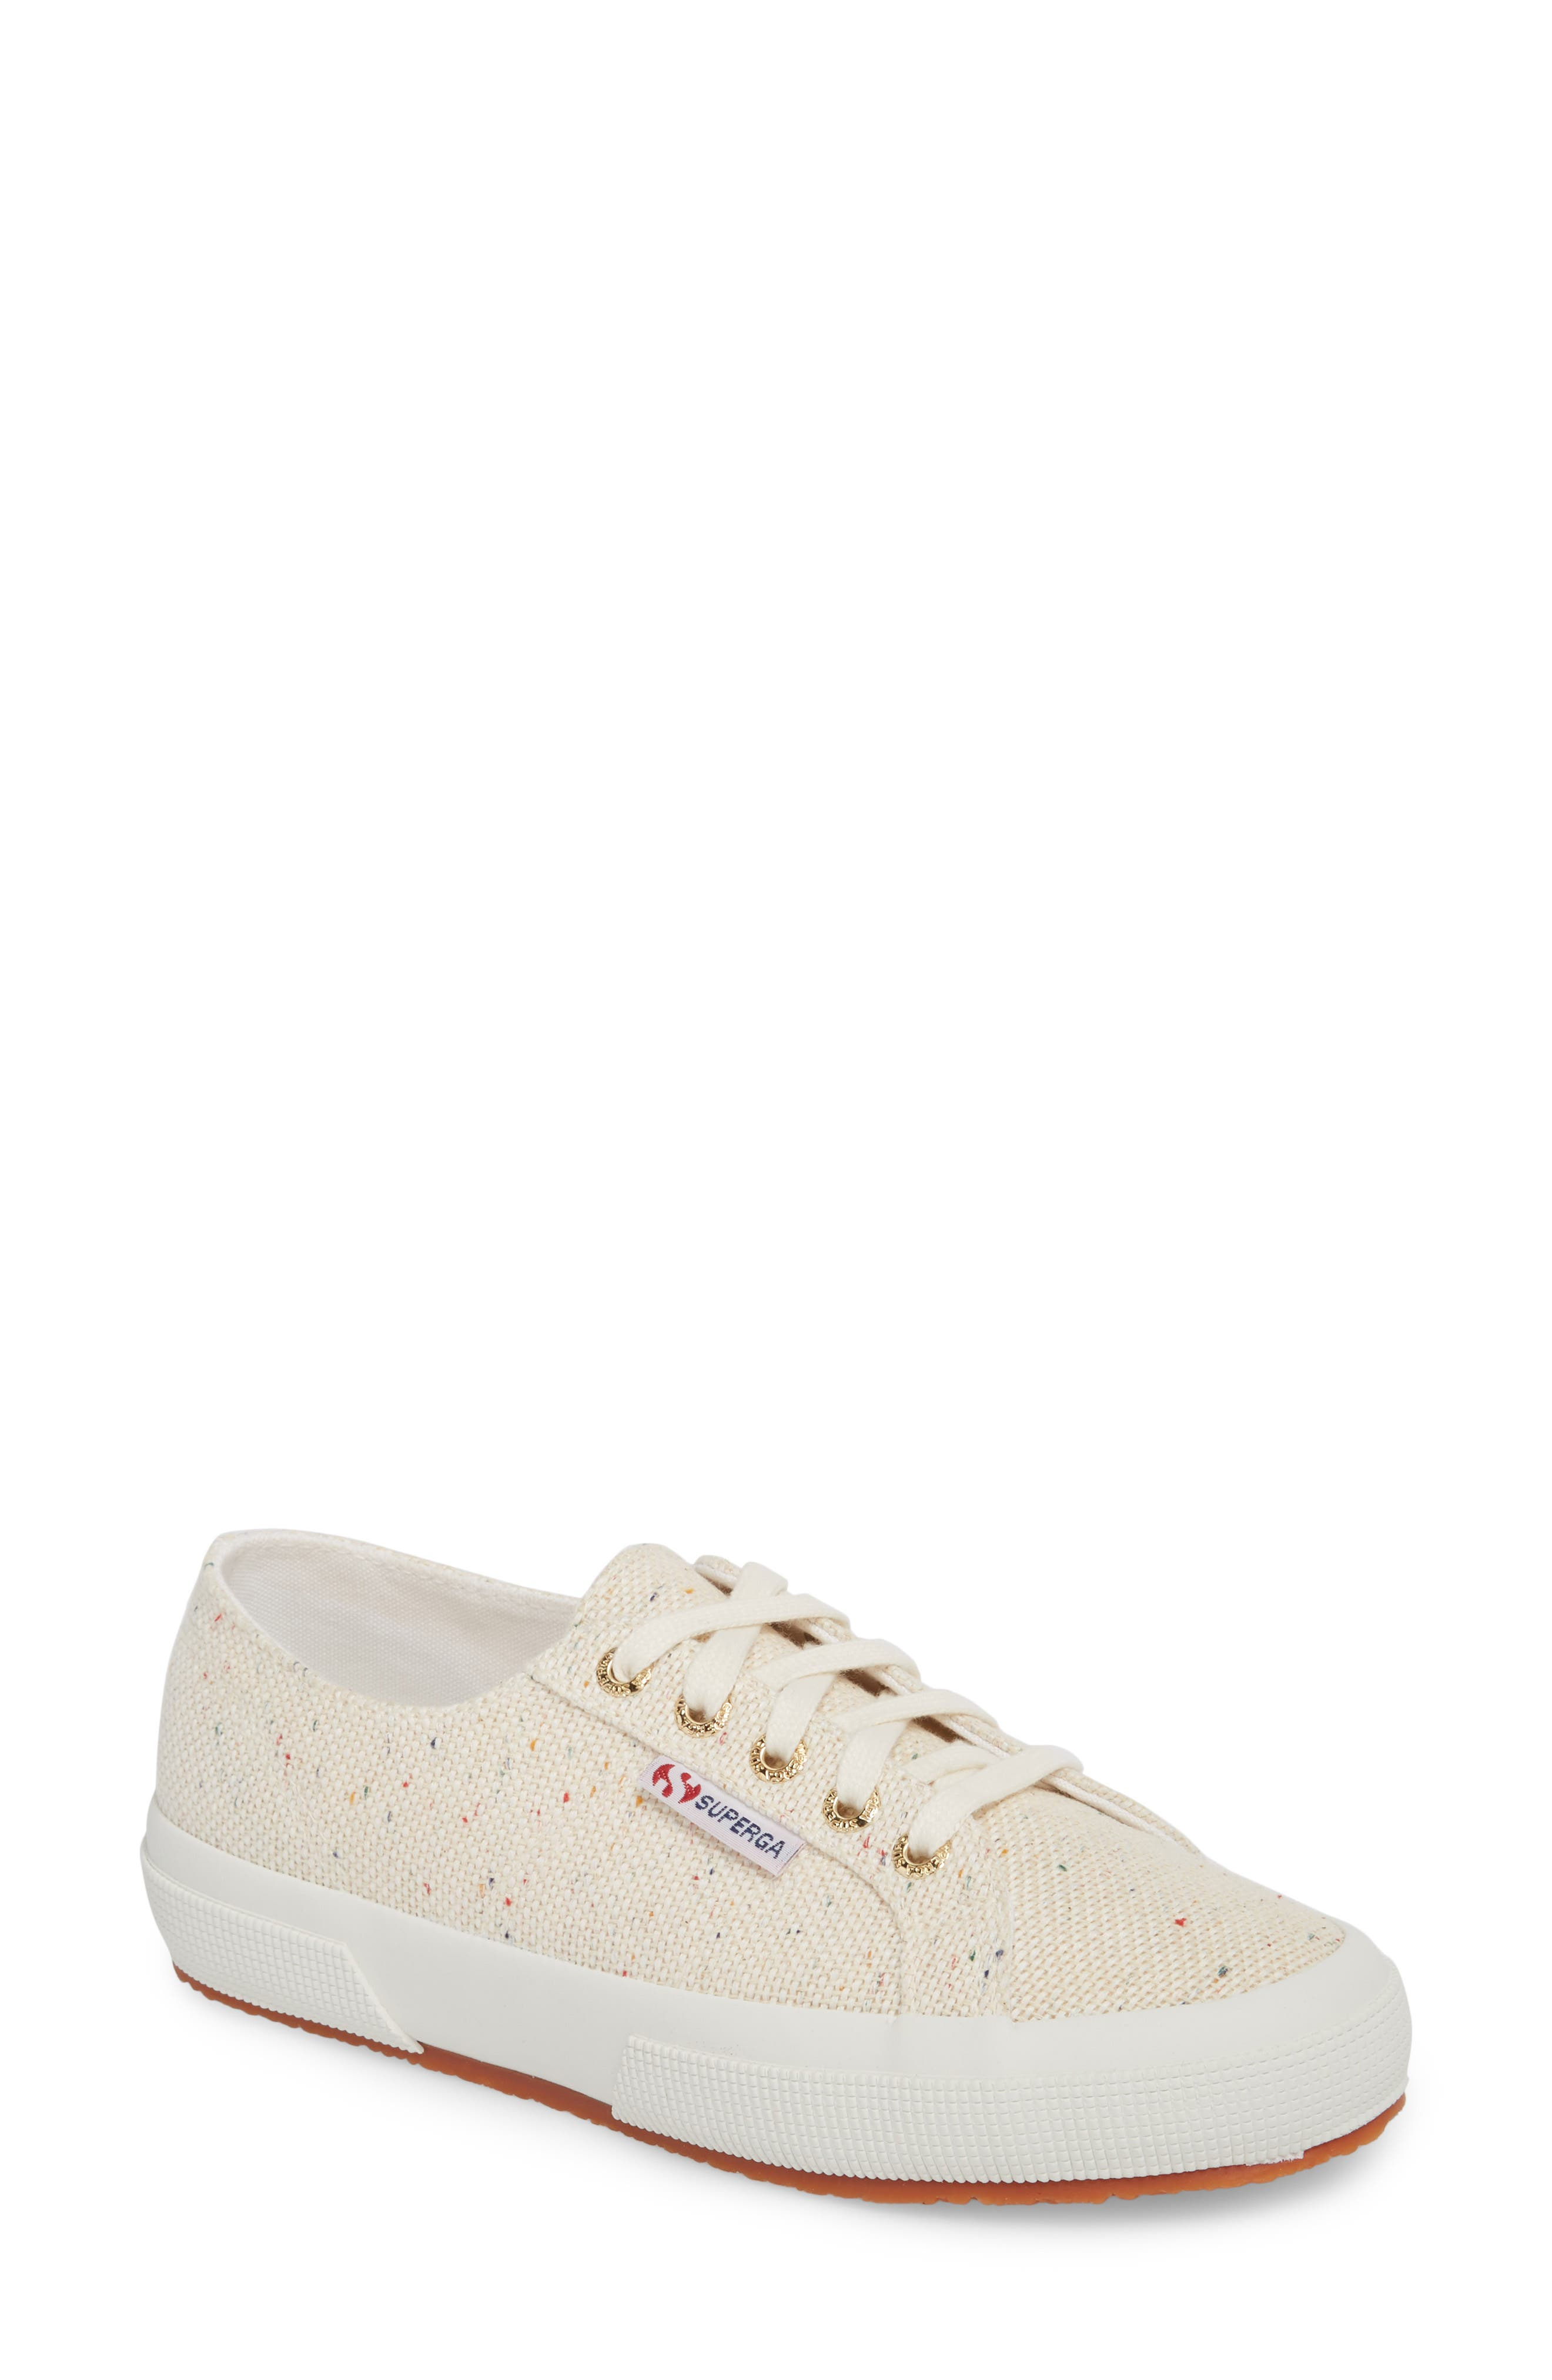 2750 Speckle Low Top Sneaker,                             Main thumbnail 1, color,                             White Multi